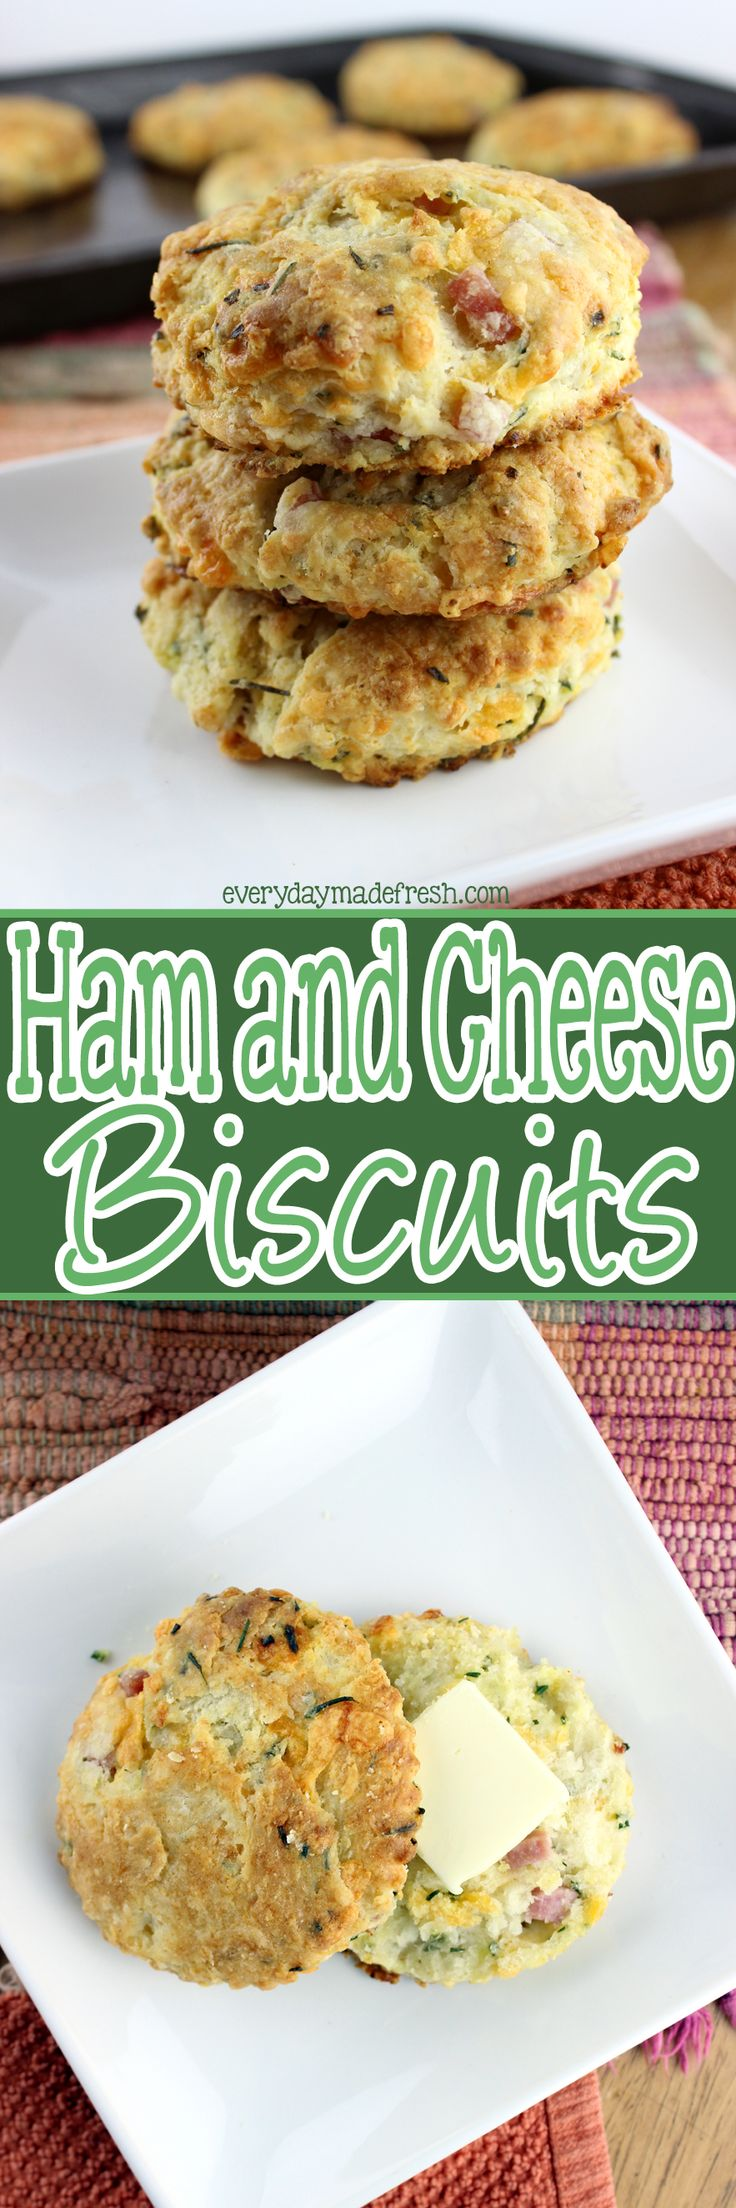 Who doesn't love a fluffy homemade buttermilk biscuit? Ok, so who wants a simple to make fluffy homemade buttermilk biscuit with chunks of ham and cheese? These Ham and Cheese Biscuits are everything you'd ever want in a biscuit! | EverydayMadeFresh.com http://www.everydaymadefresh.com/ham-cheese-biscuits/